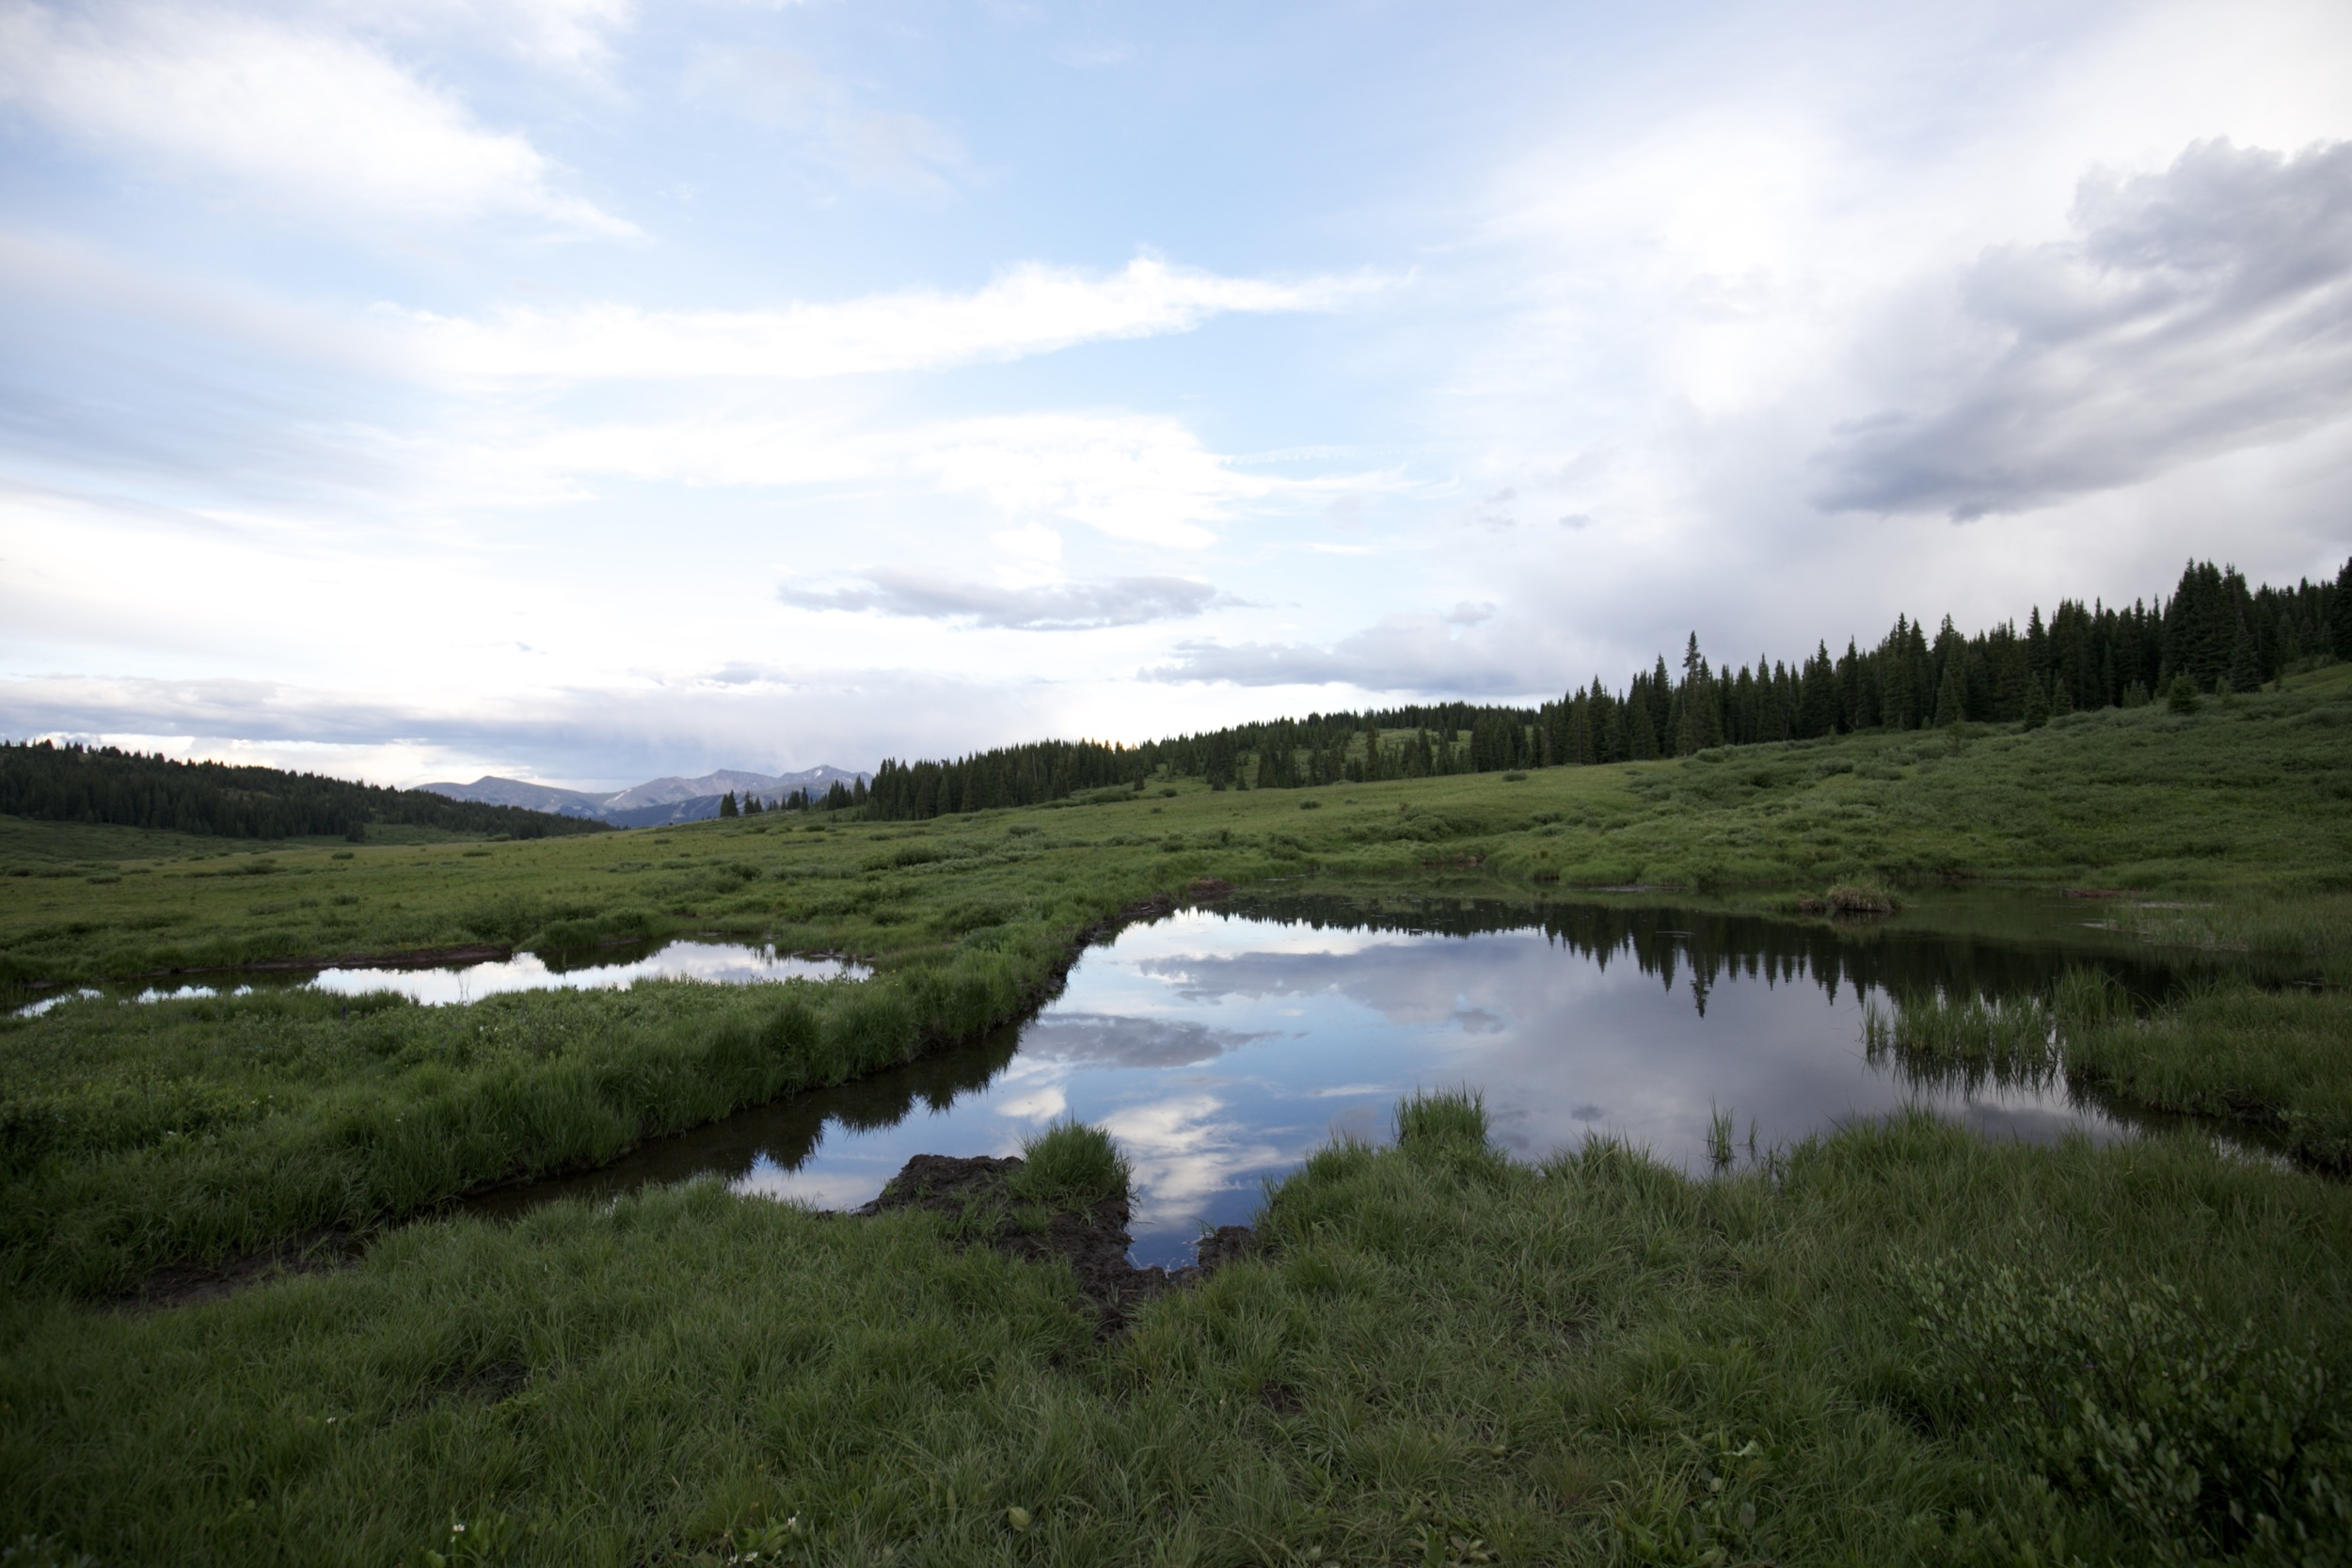 Clouds reflected in a pond, in the mountains of Colorado.